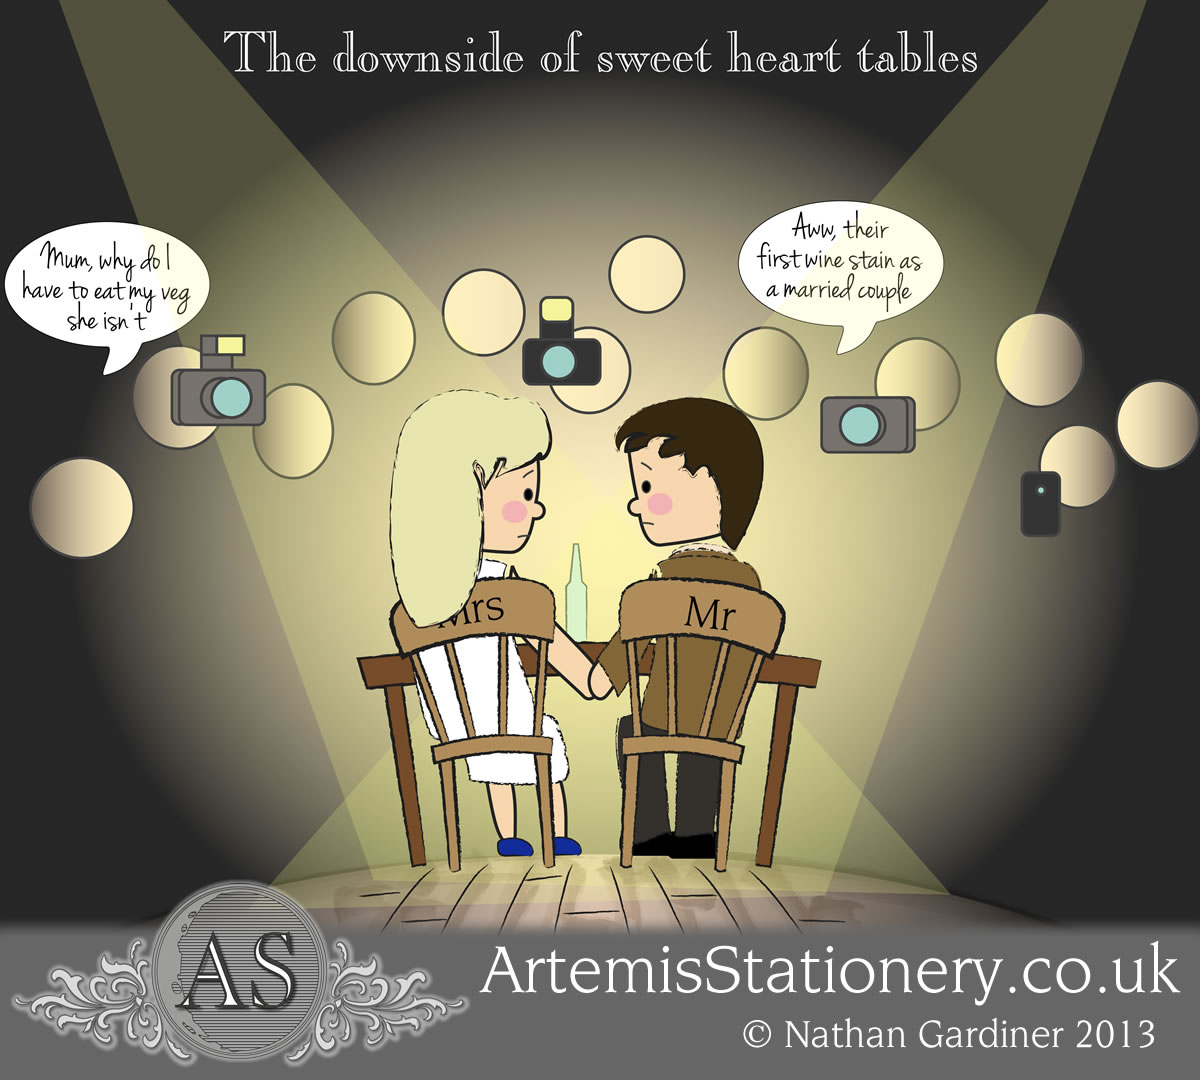 The down sides of sweet heart tables